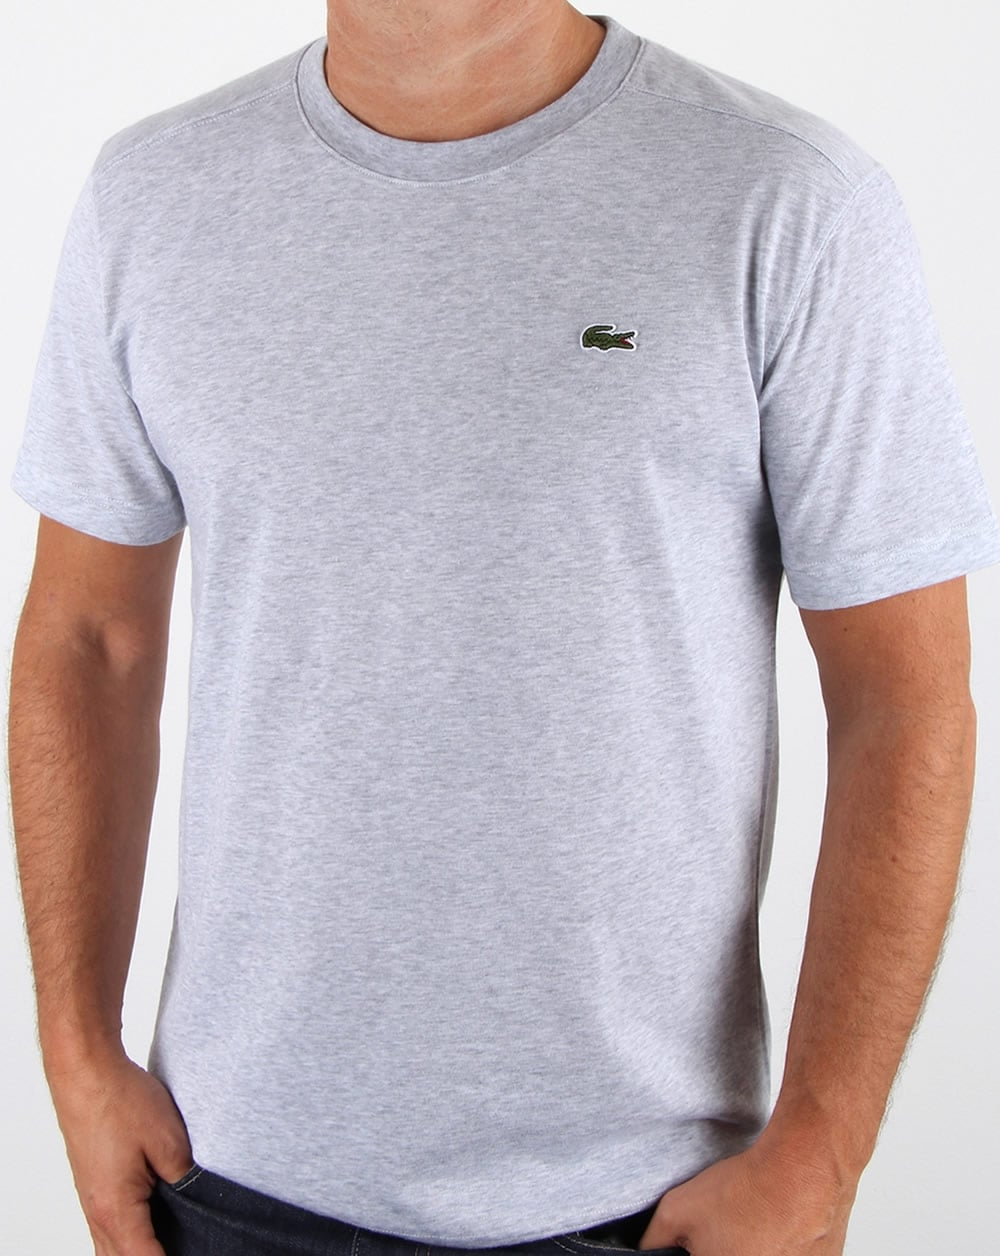 lacoste t shirt silver chine crew neck tee cotton men 39 s. Black Bedroom Furniture Sets. Home Design Ideas